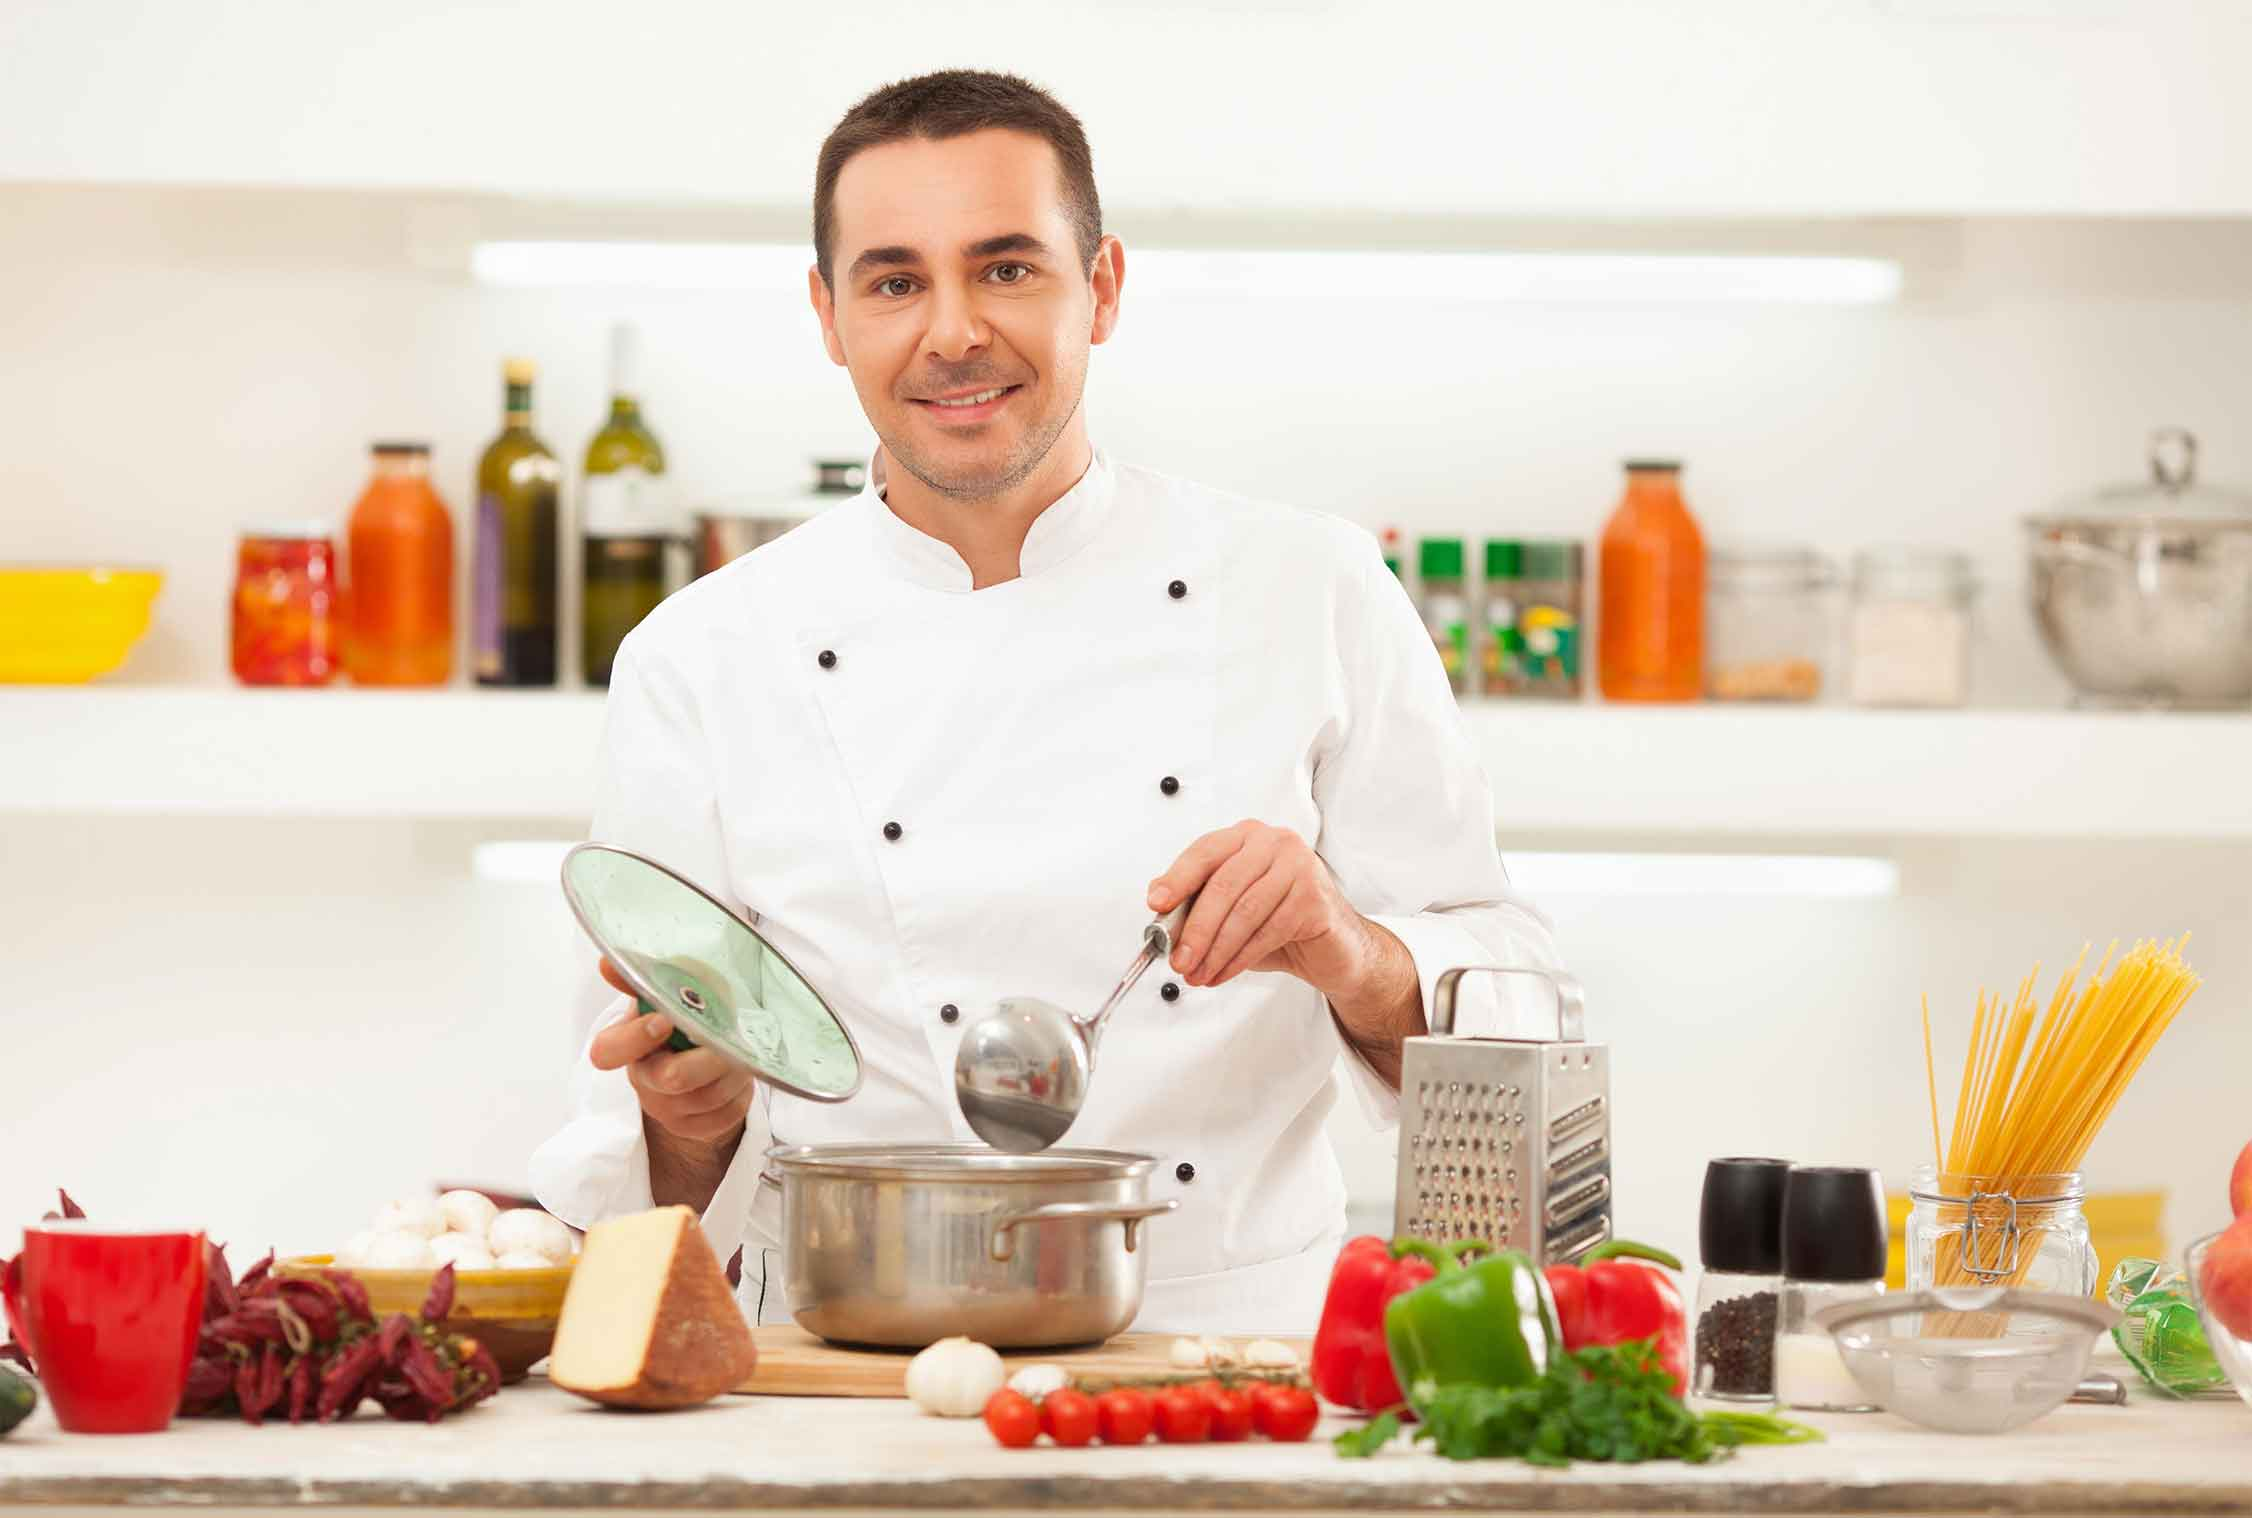 Virtual Cookery Team Building and Corporate Cookery Experiences